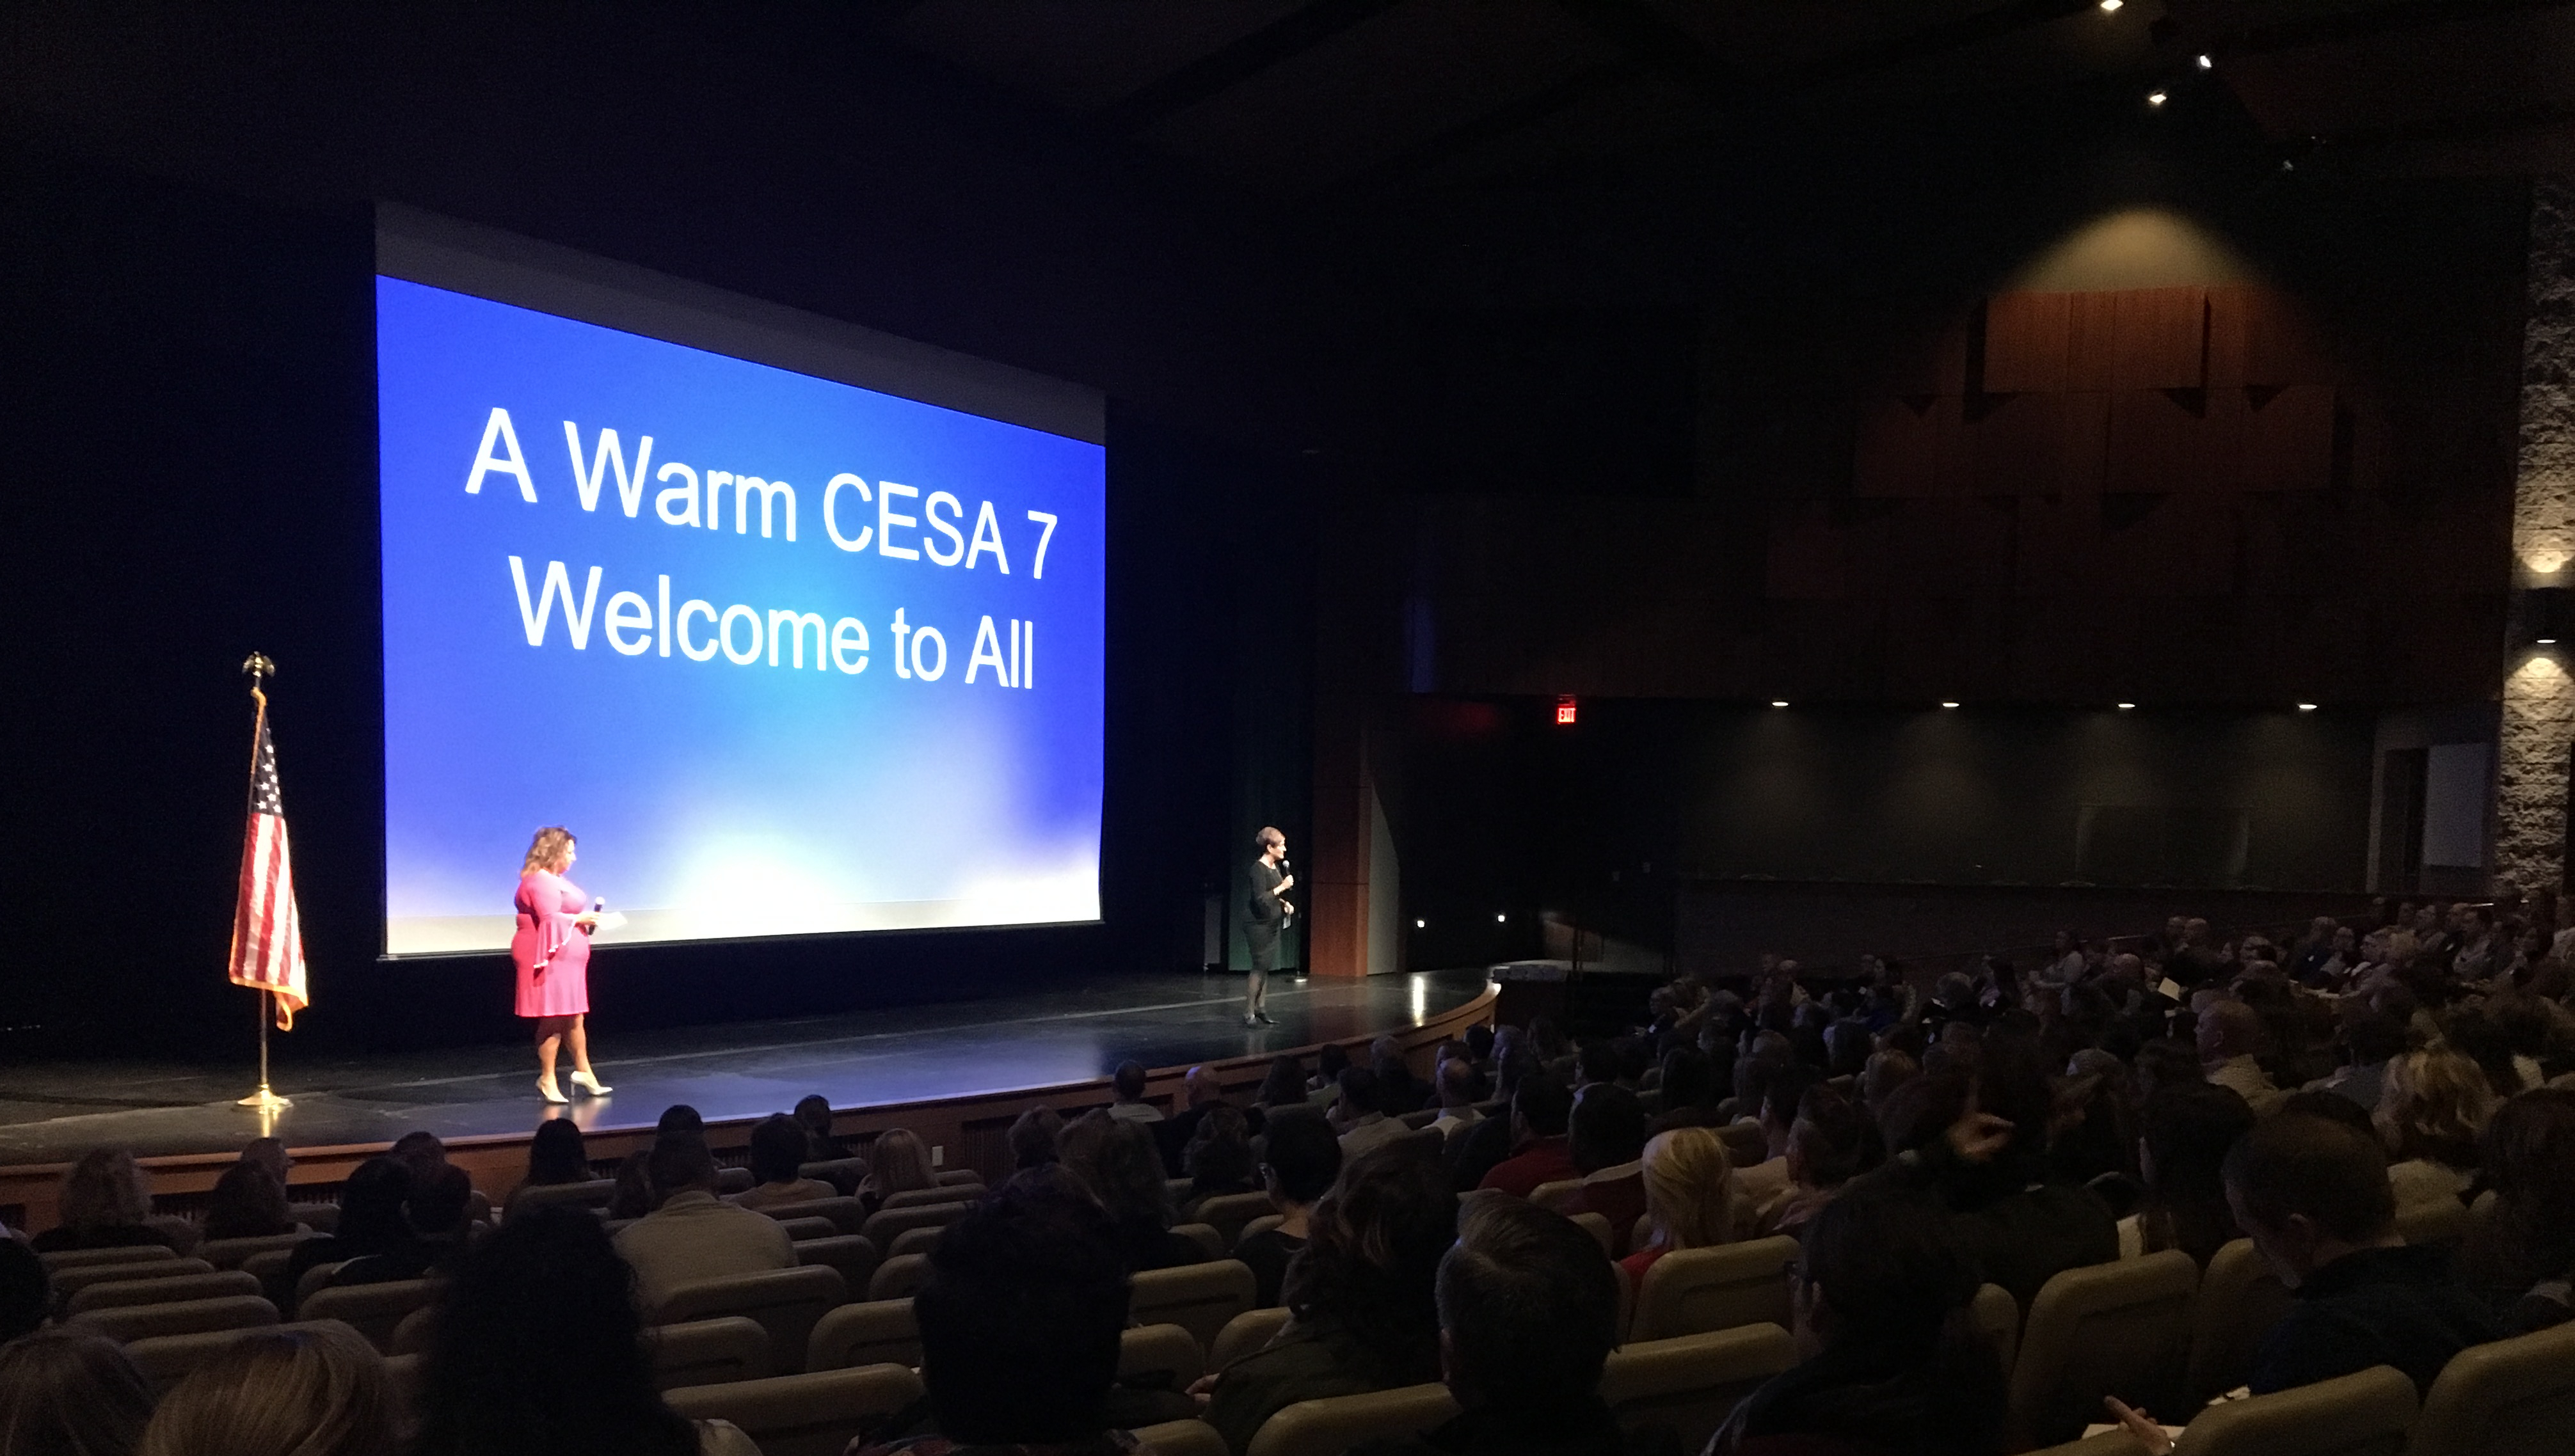 A Warm CESA 7 Welcome at the Dr. Anthony Muhammad Event!